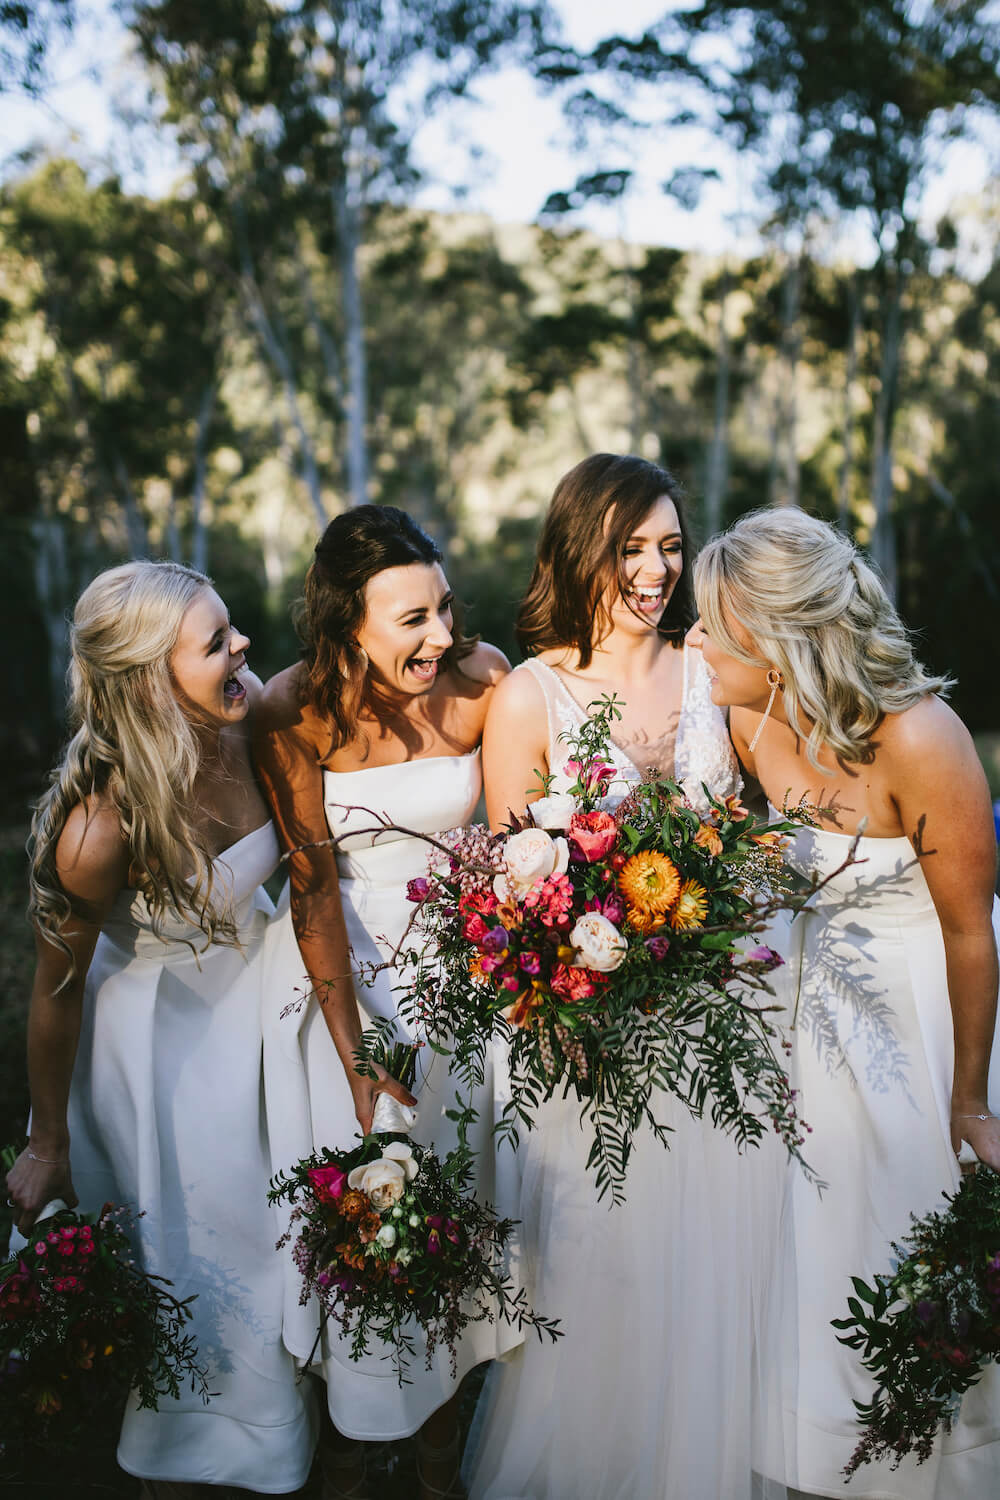 wedding florist near me wedding planner queensland storybook and co ingrid coles photography woods and bloom